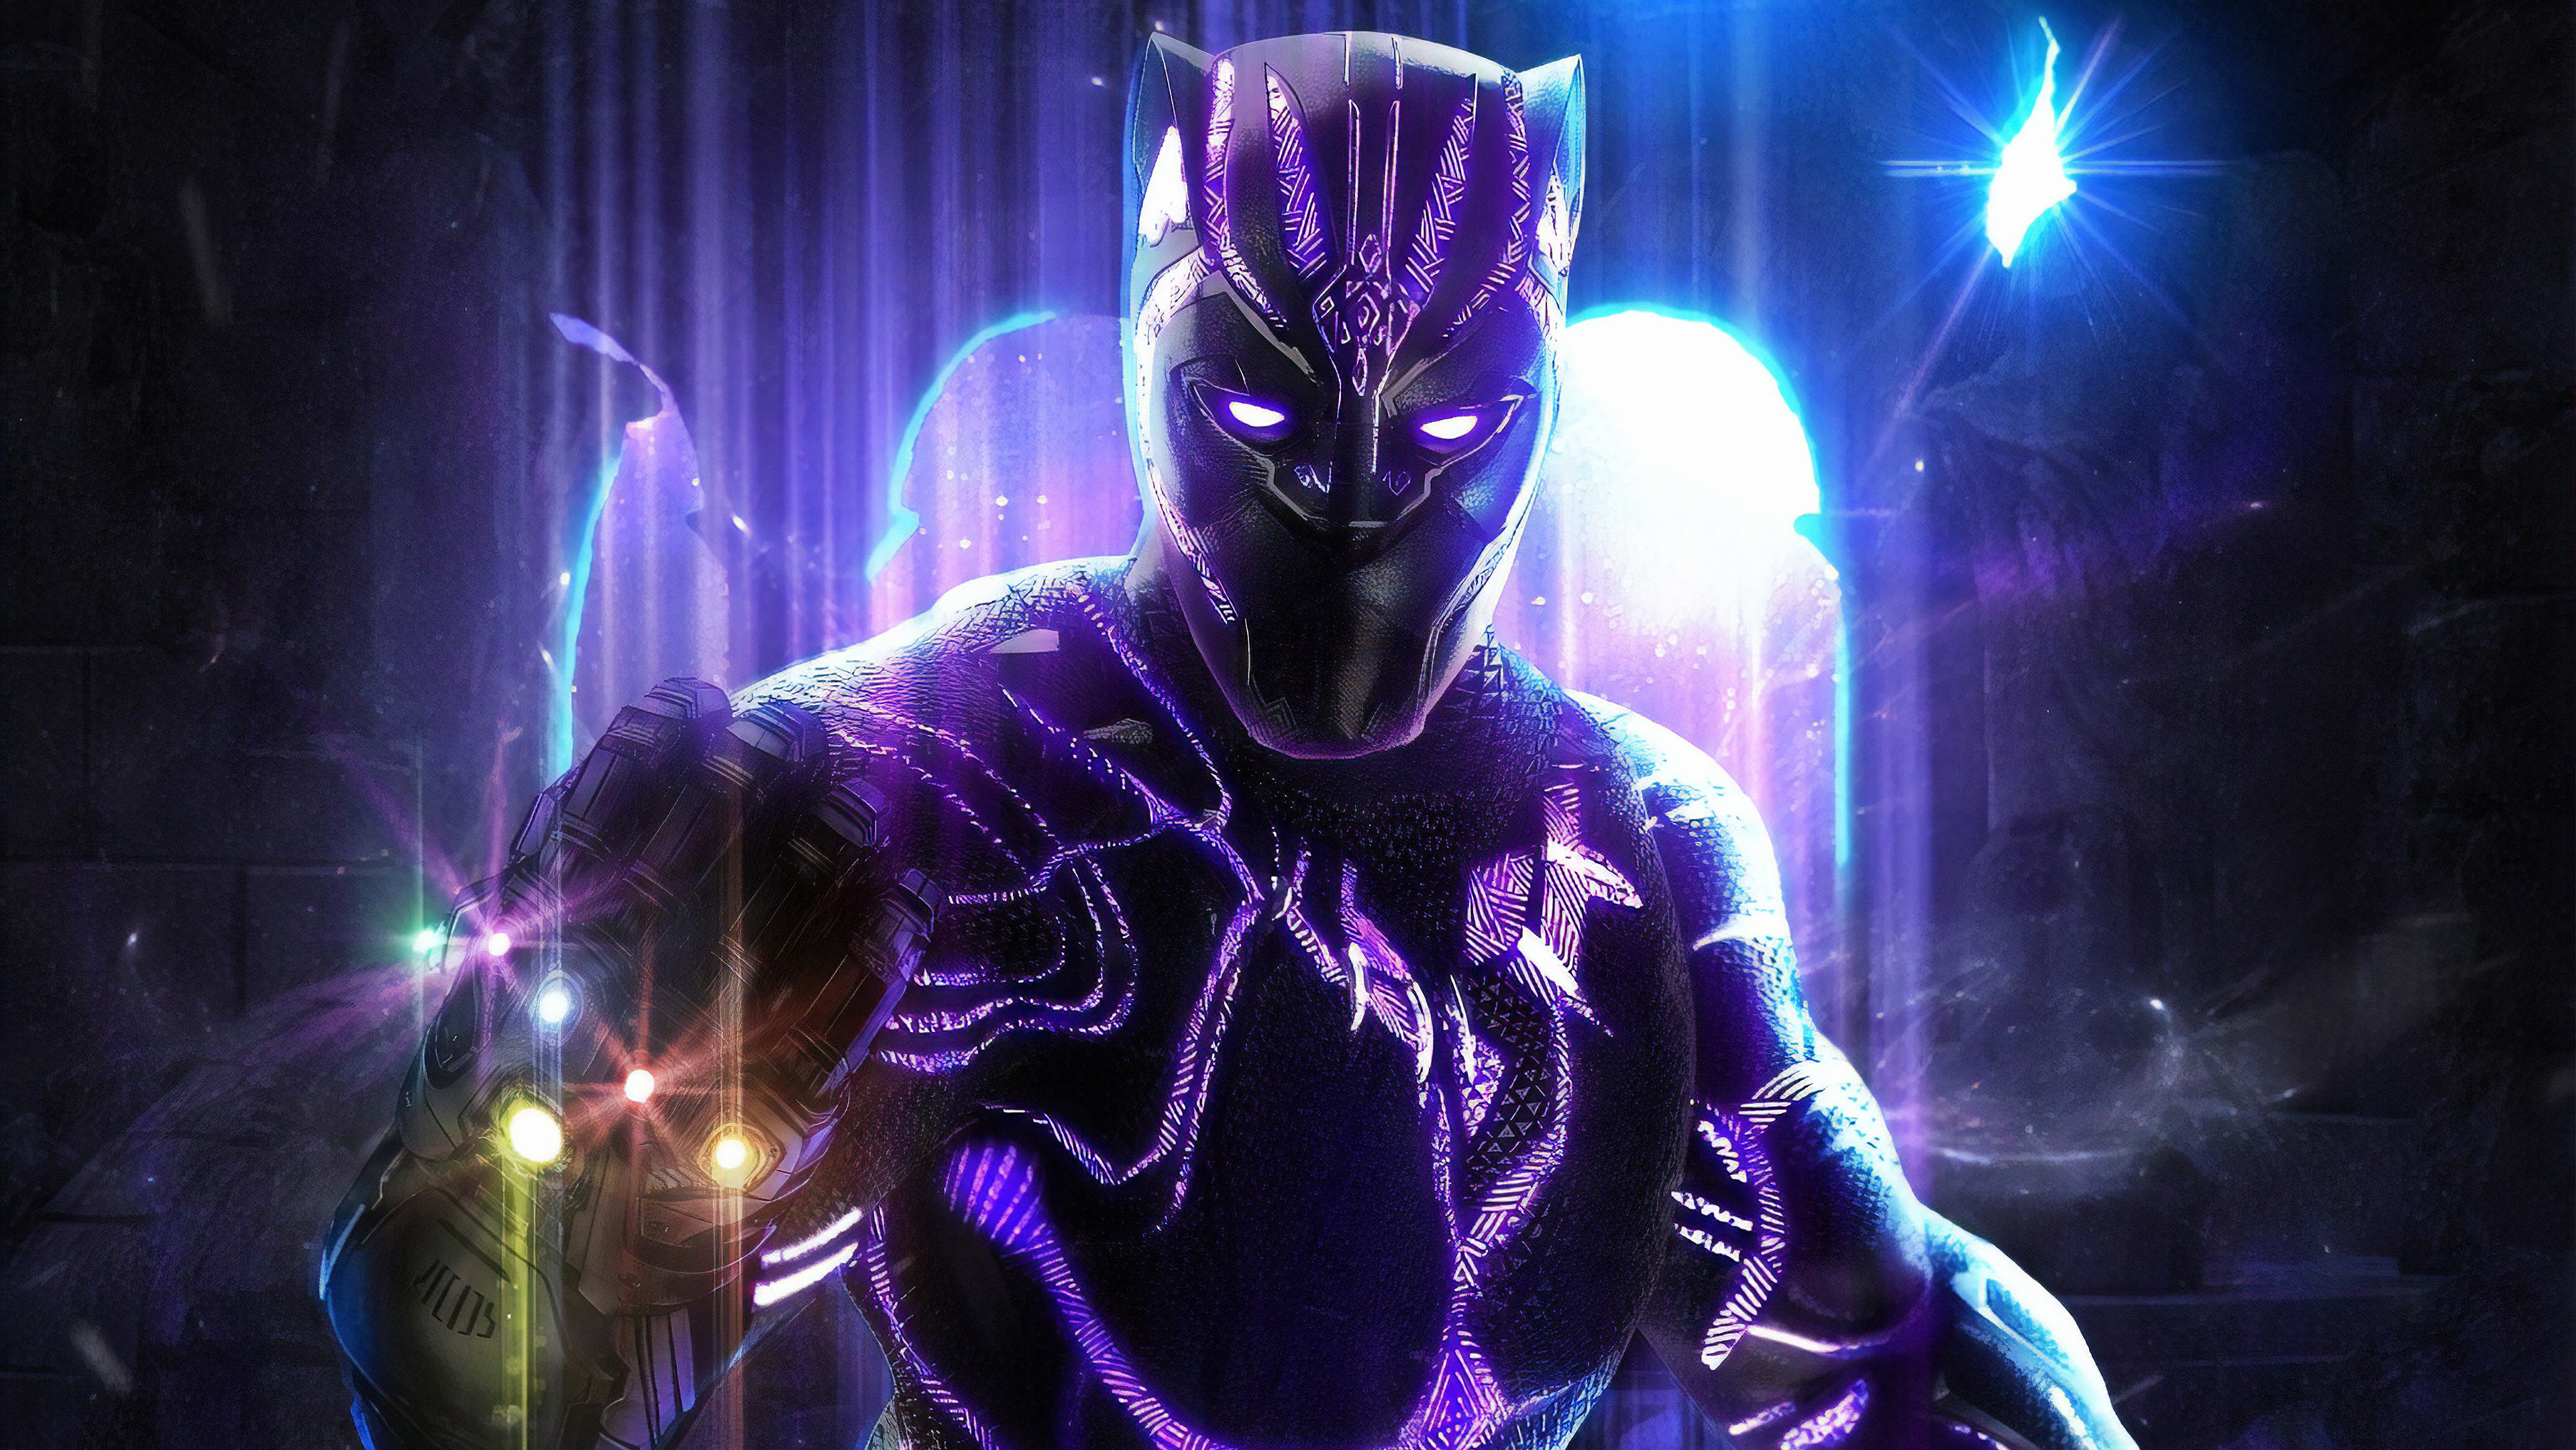 Black Panther 4k Ultra Hd Wallpaper Background Image 3840x2161 Id 1026497 Wallpaper Abyss